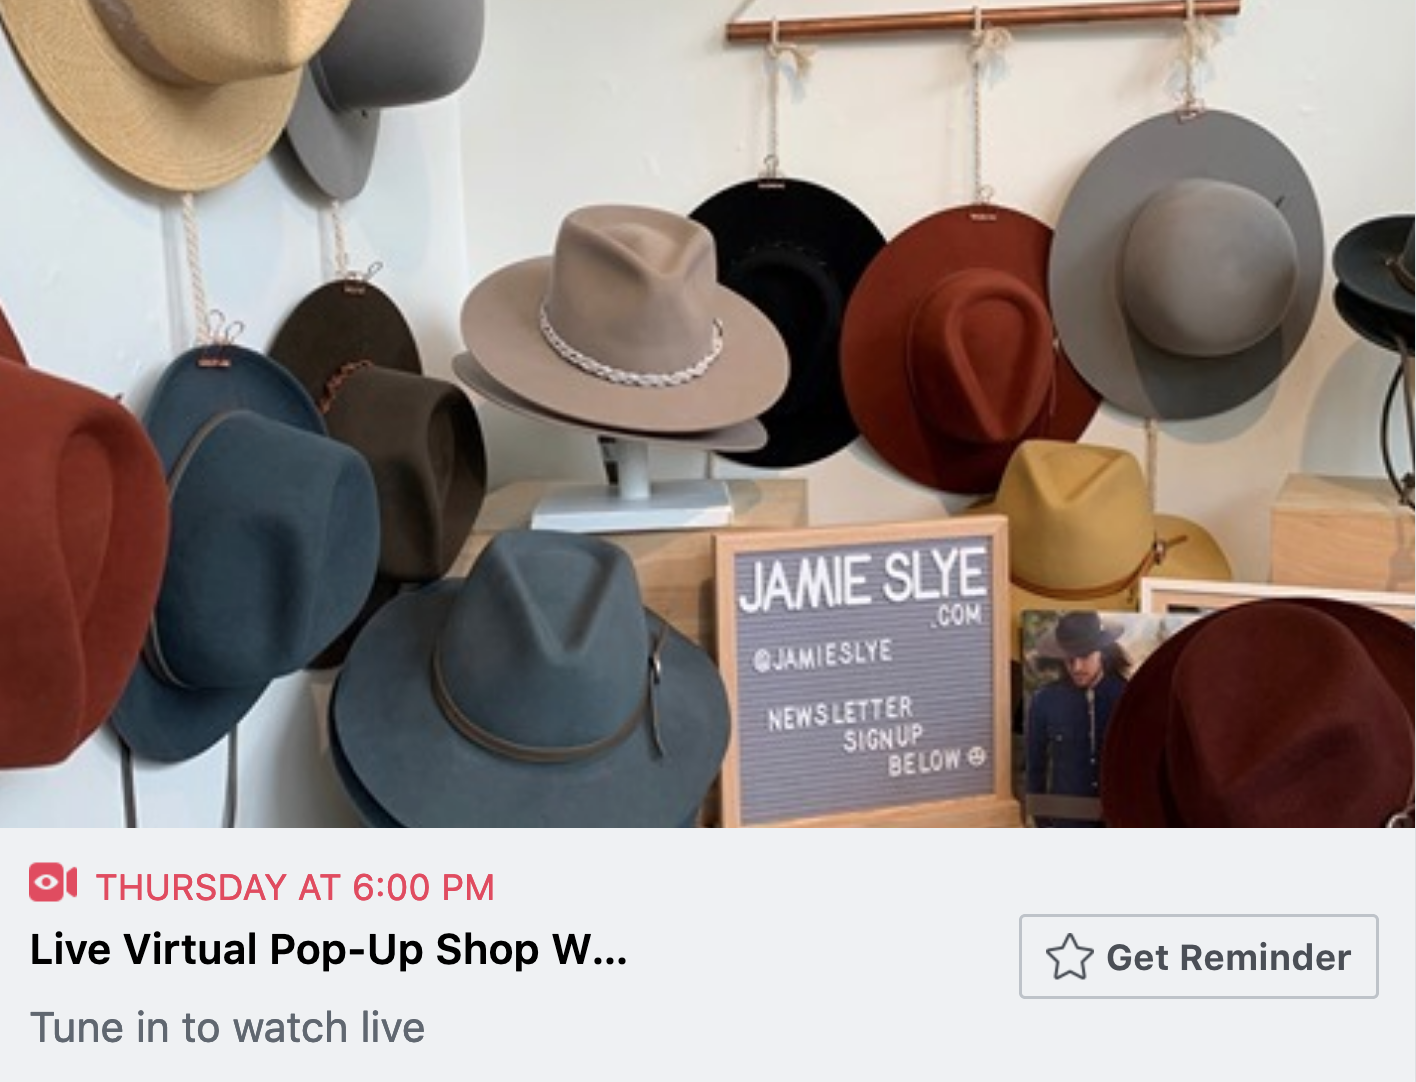 Have a live virtual pop up to promote your business